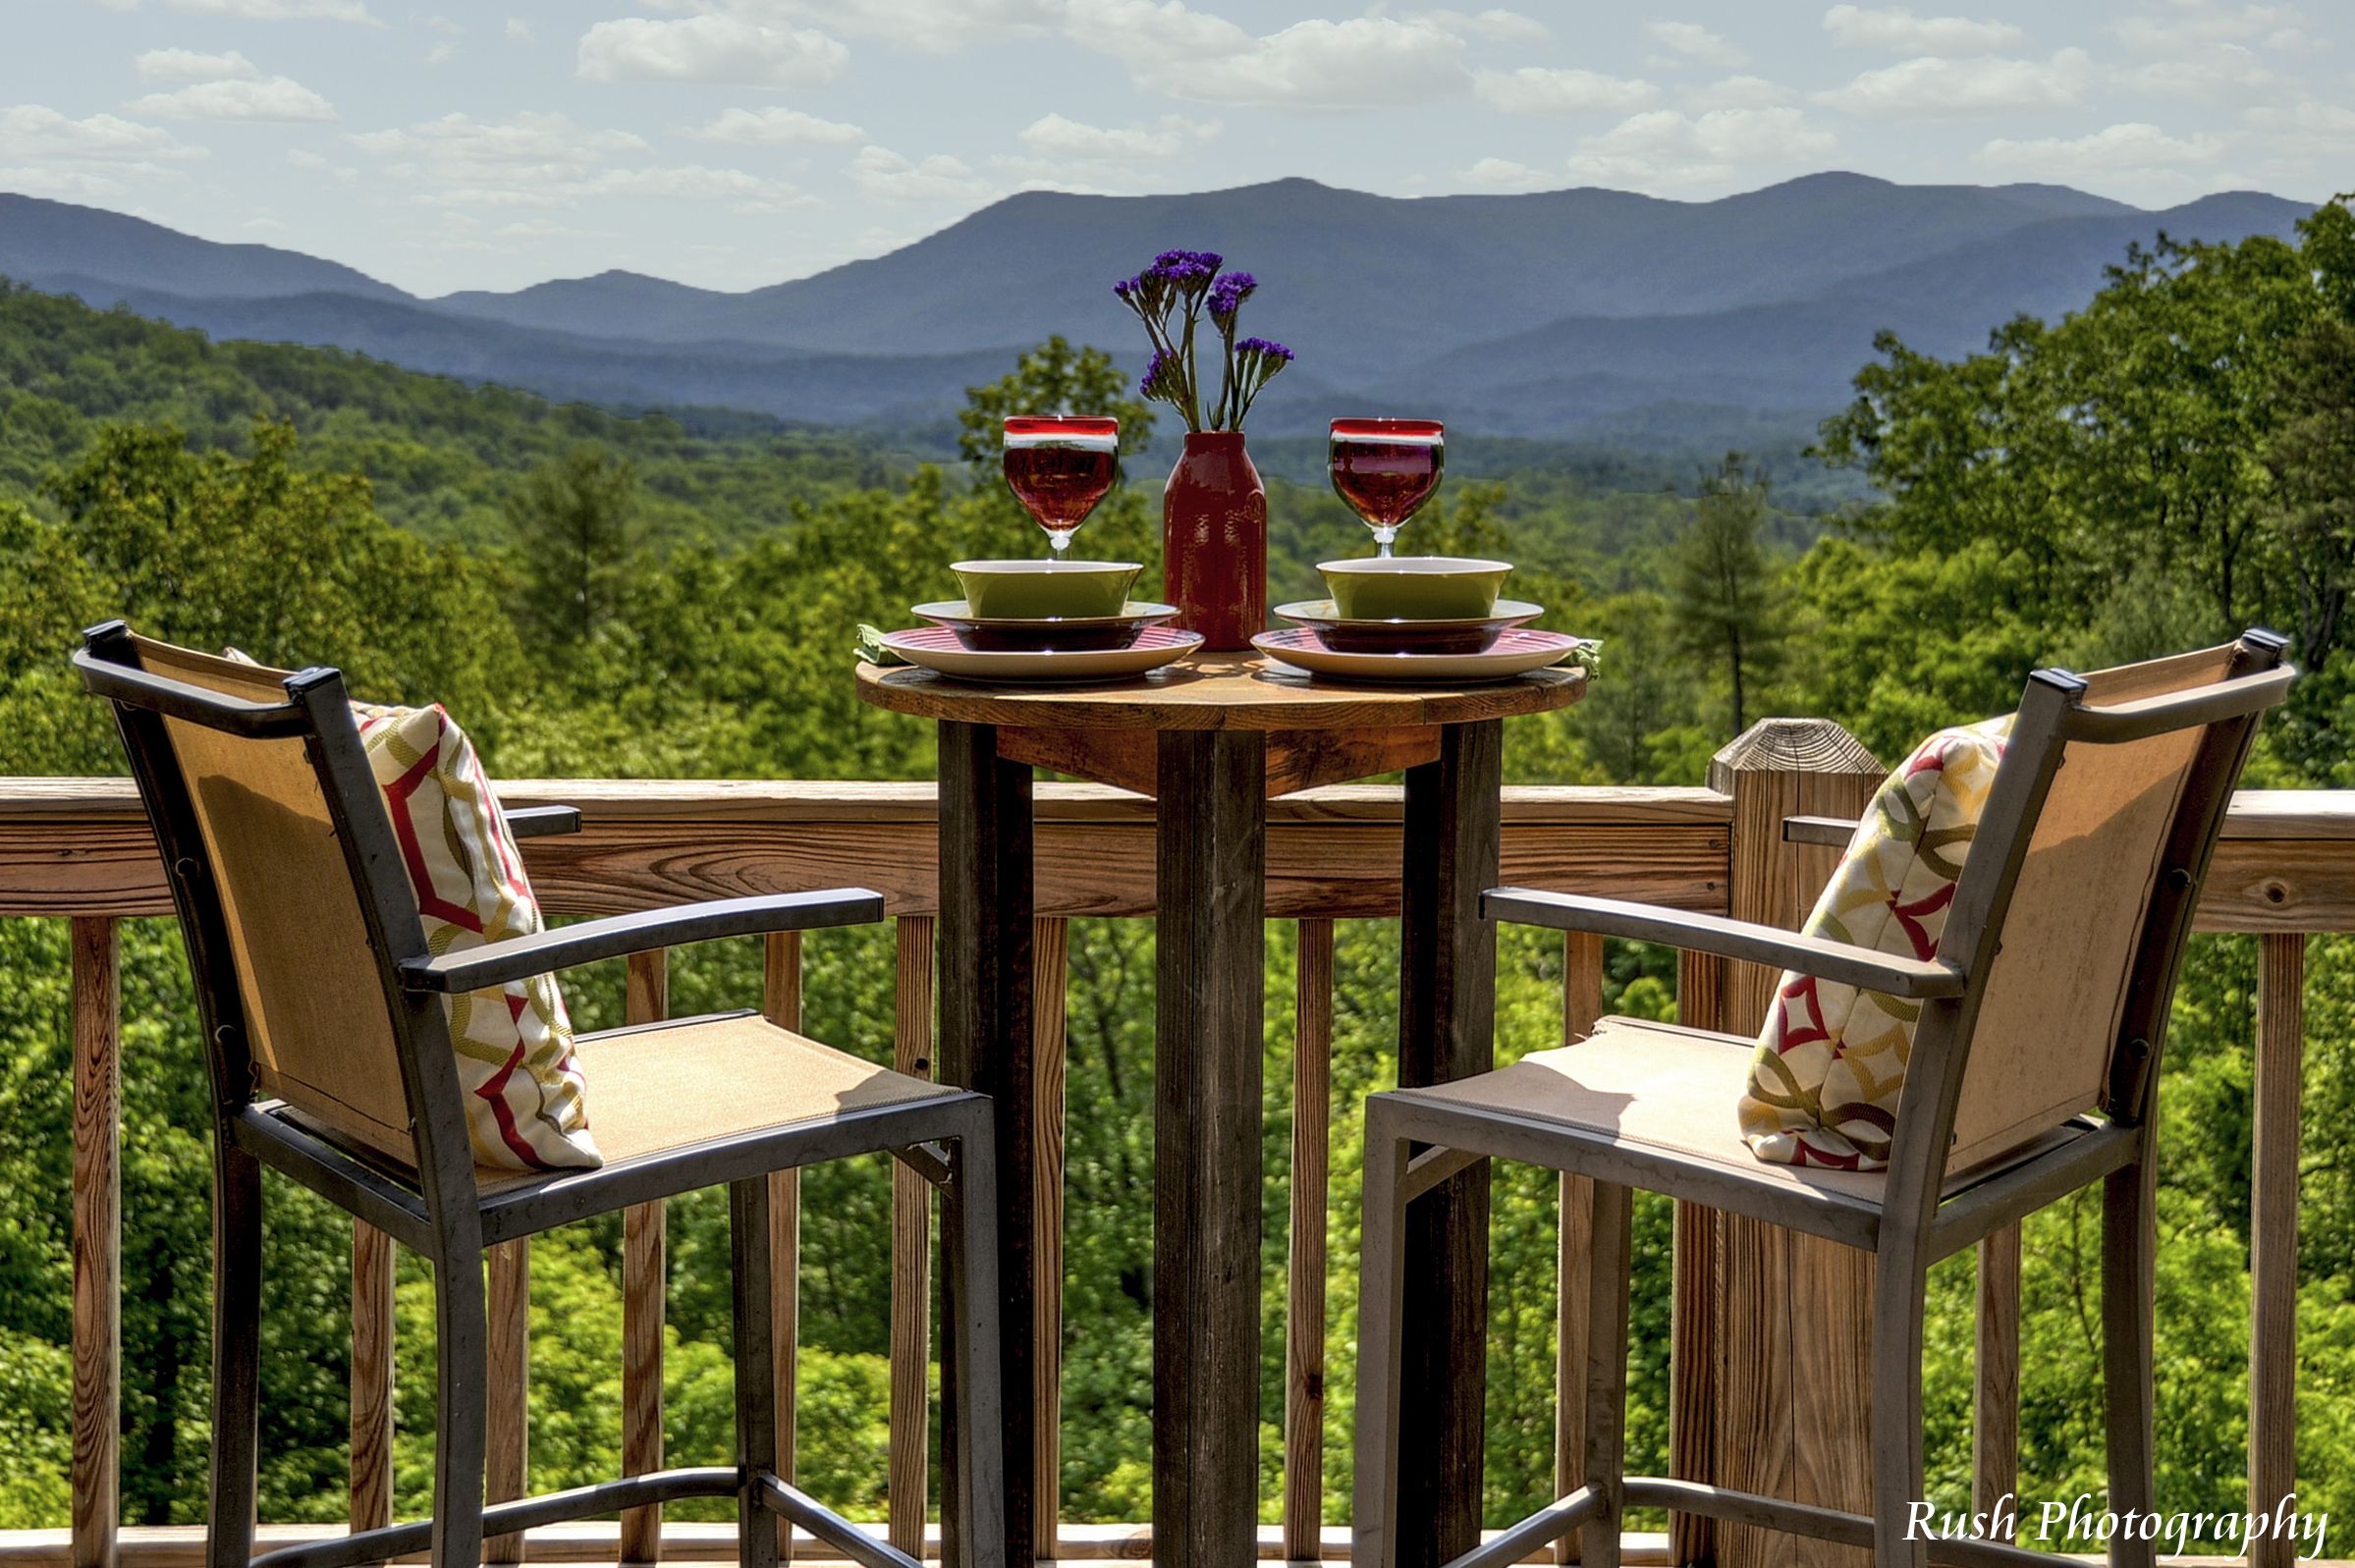 Outdoor dining with incredible views